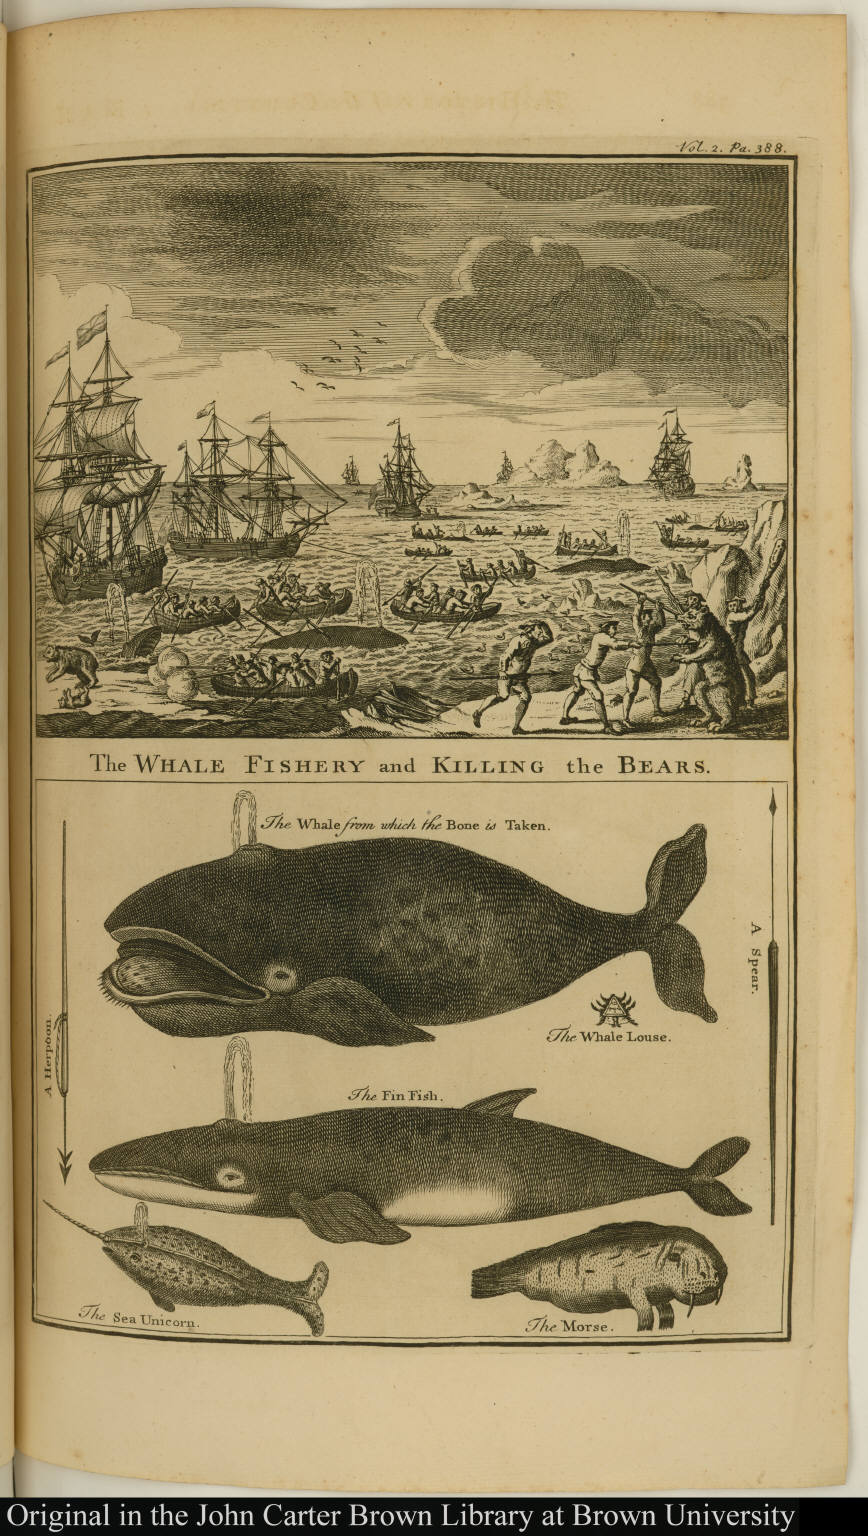 The Whale Fishery and Killing the Bears